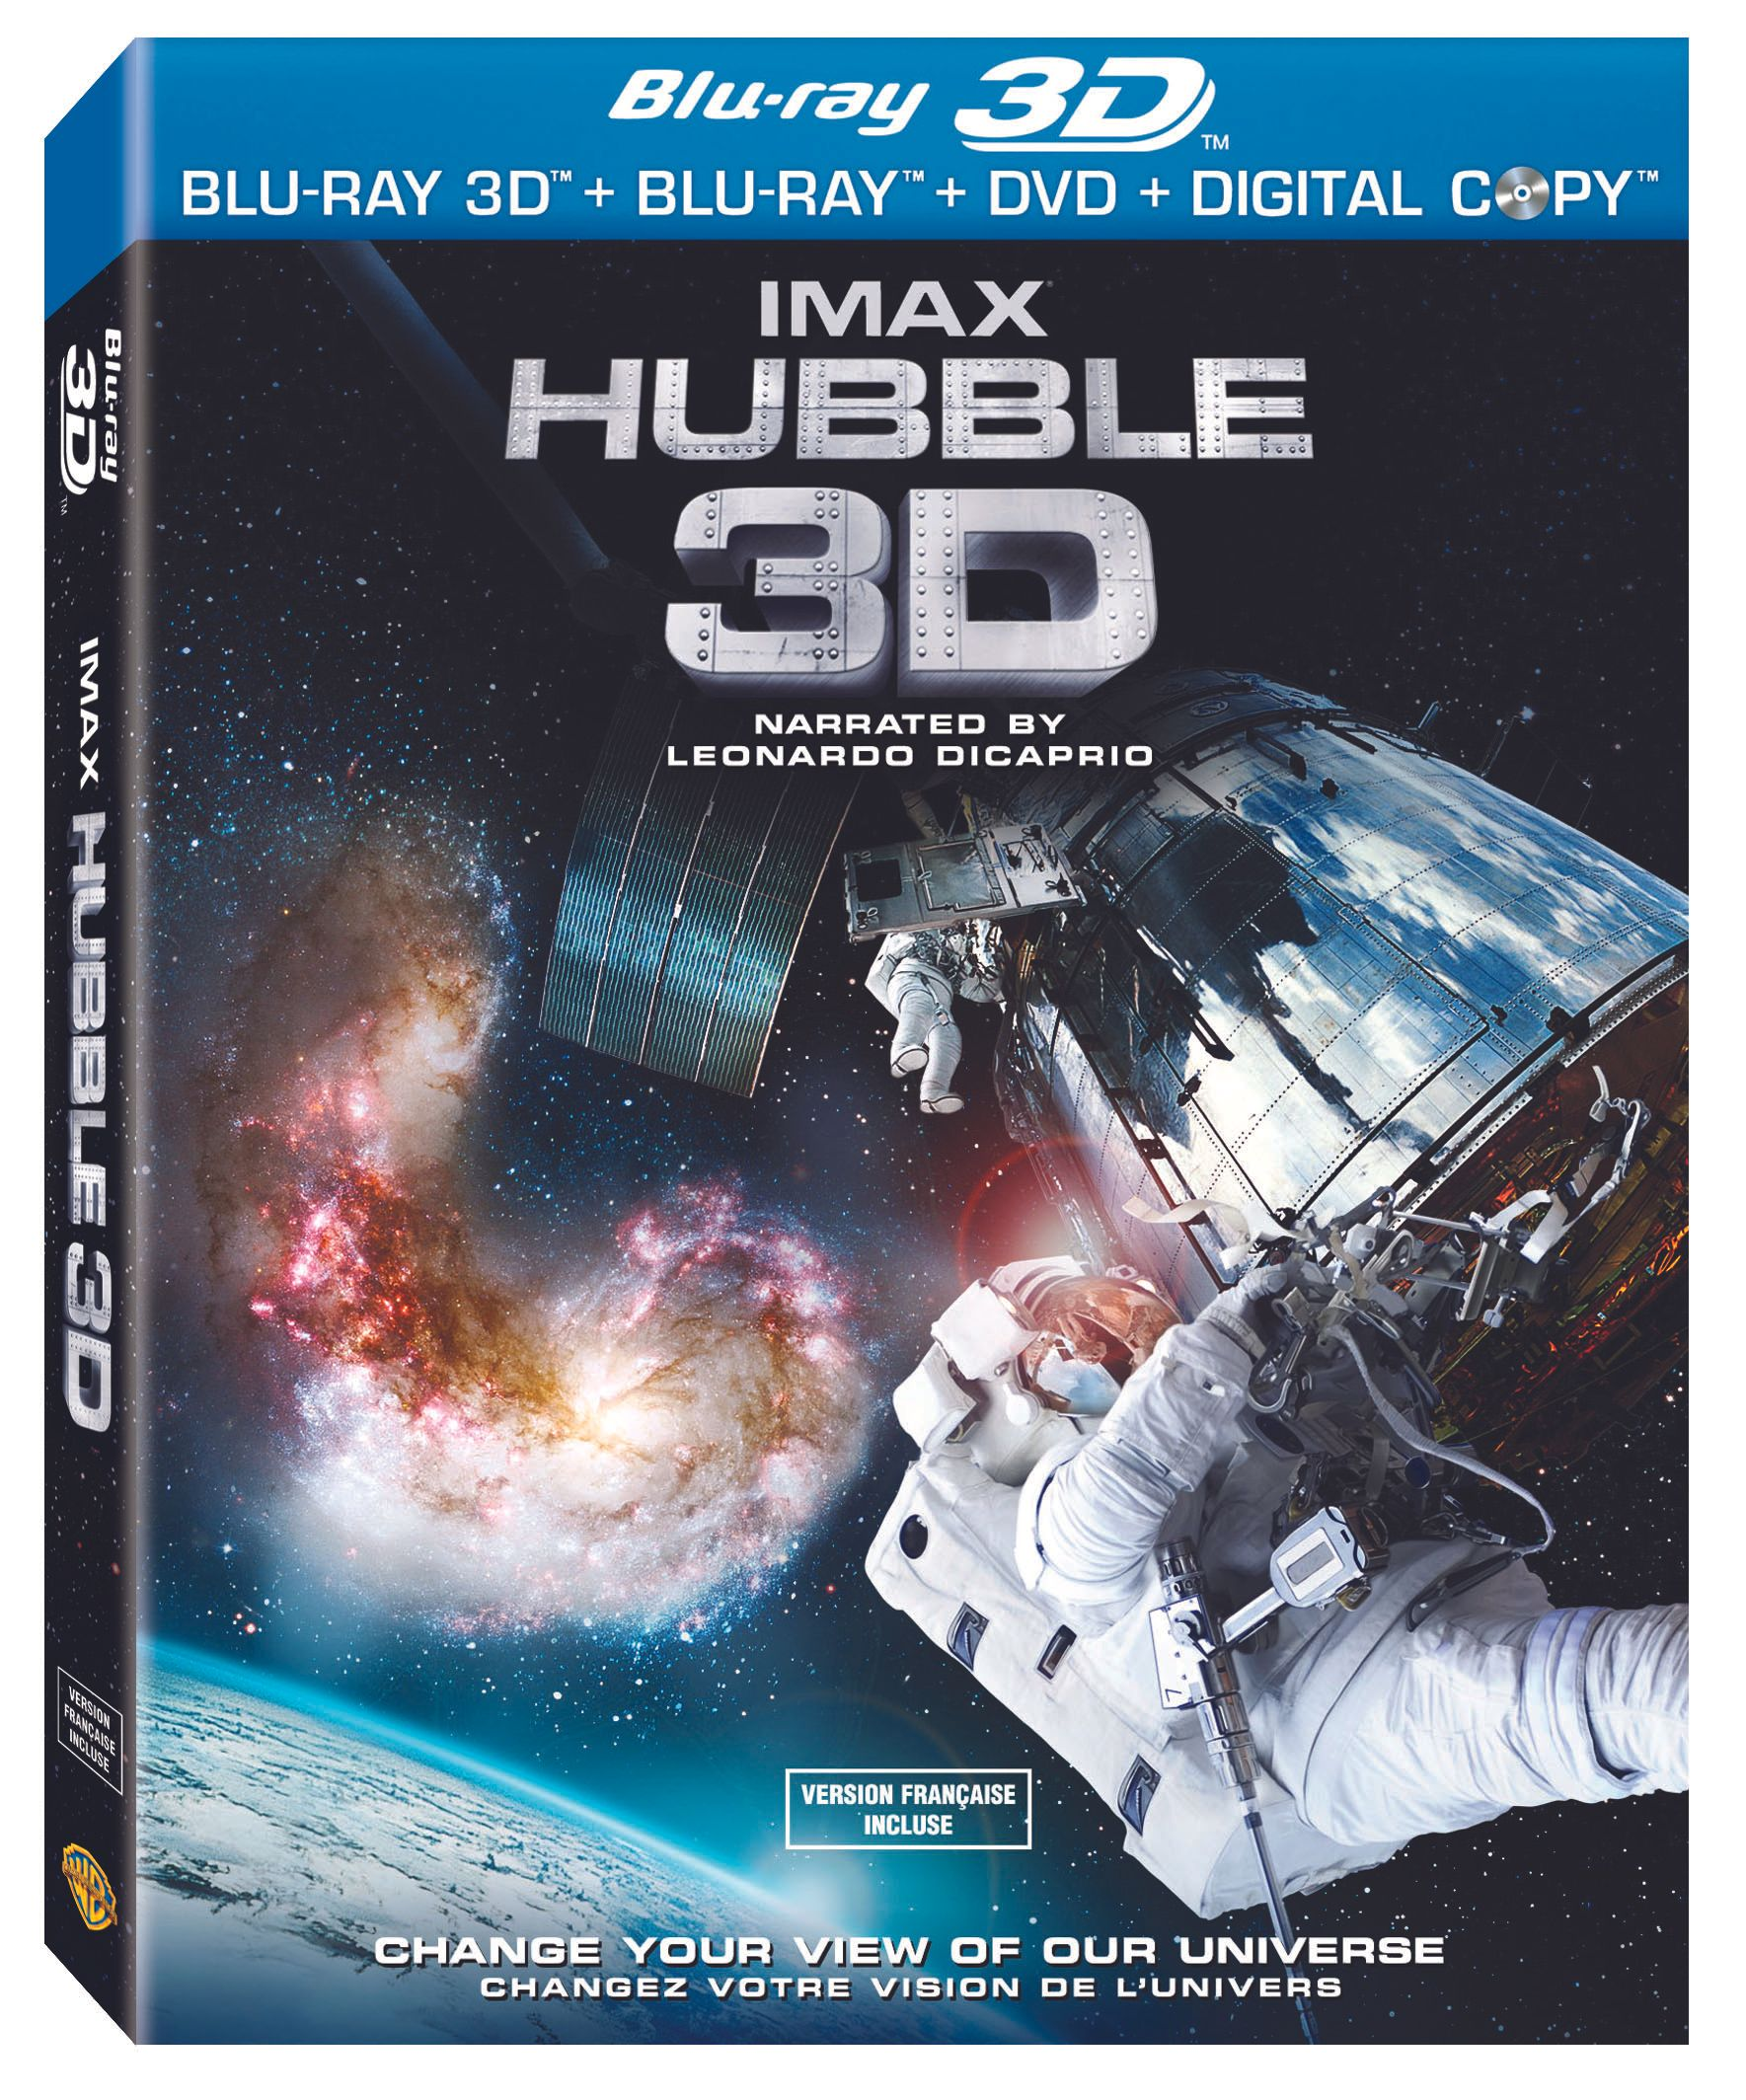 Hubble IMAX Blu-ray Cover (page 4) - Pics about space